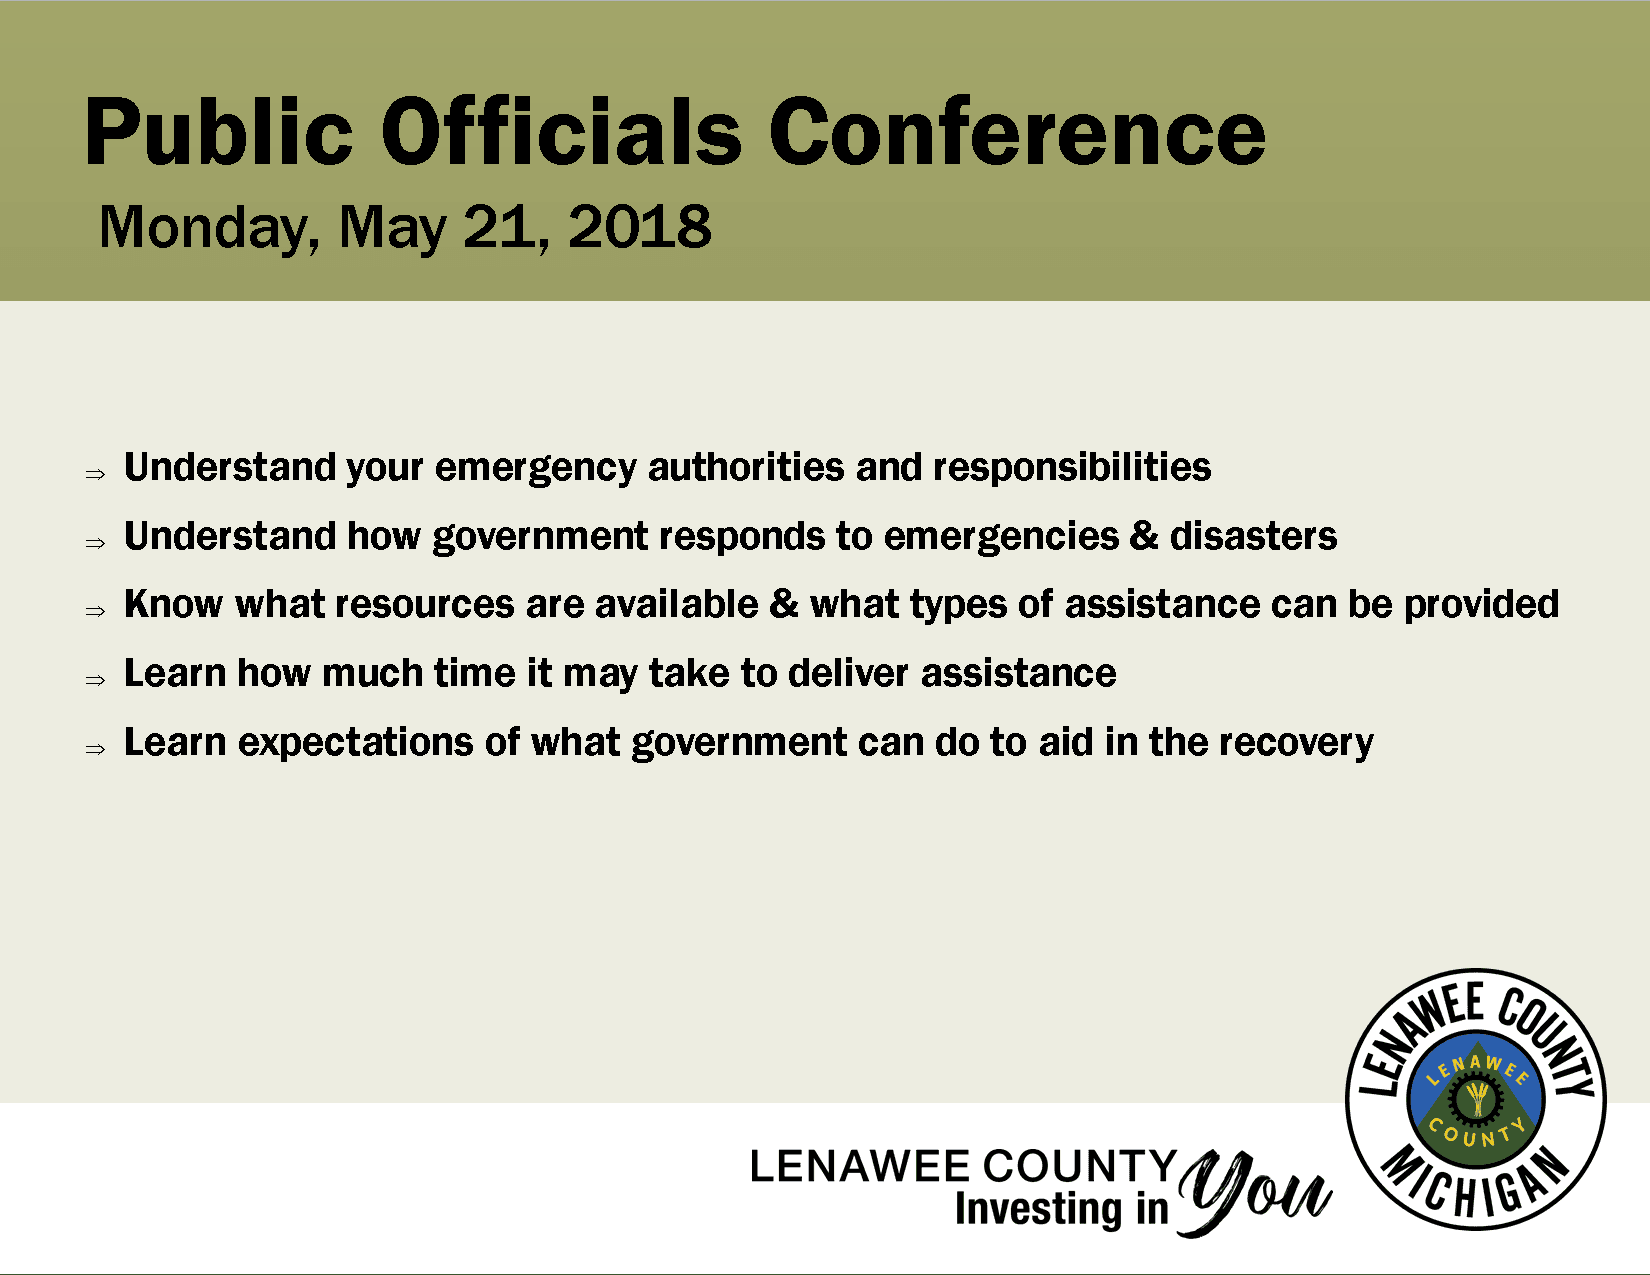 Public Officials Conference